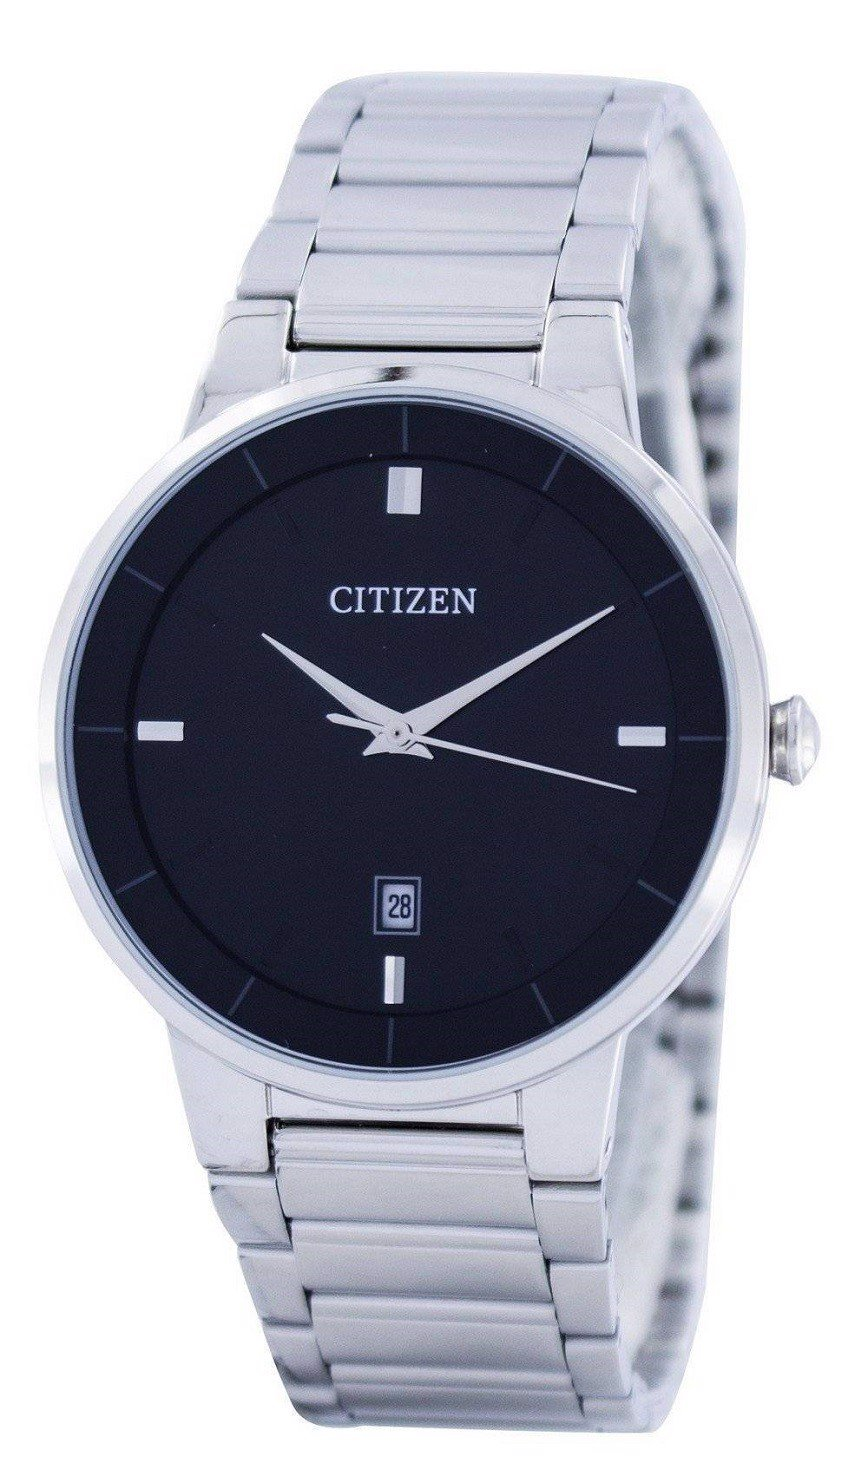 Đồng hồ Citizen Mens Quartz Stainless Steel Watch BI5010-59E